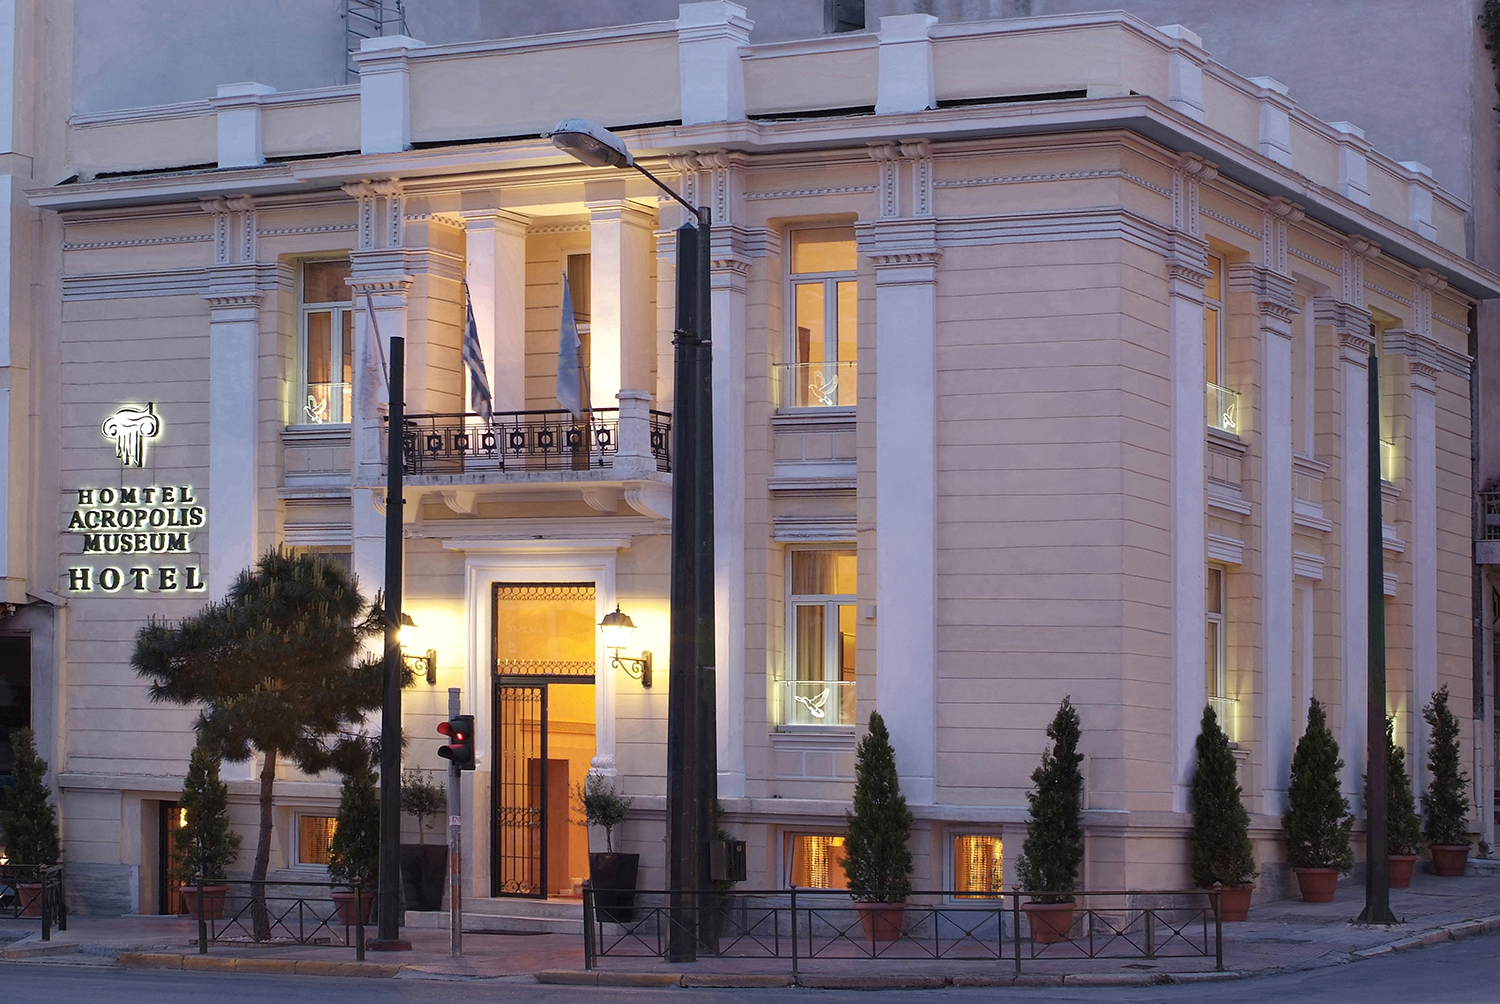 Acropolis Museum Boutique Hotel - Hotel in Athens